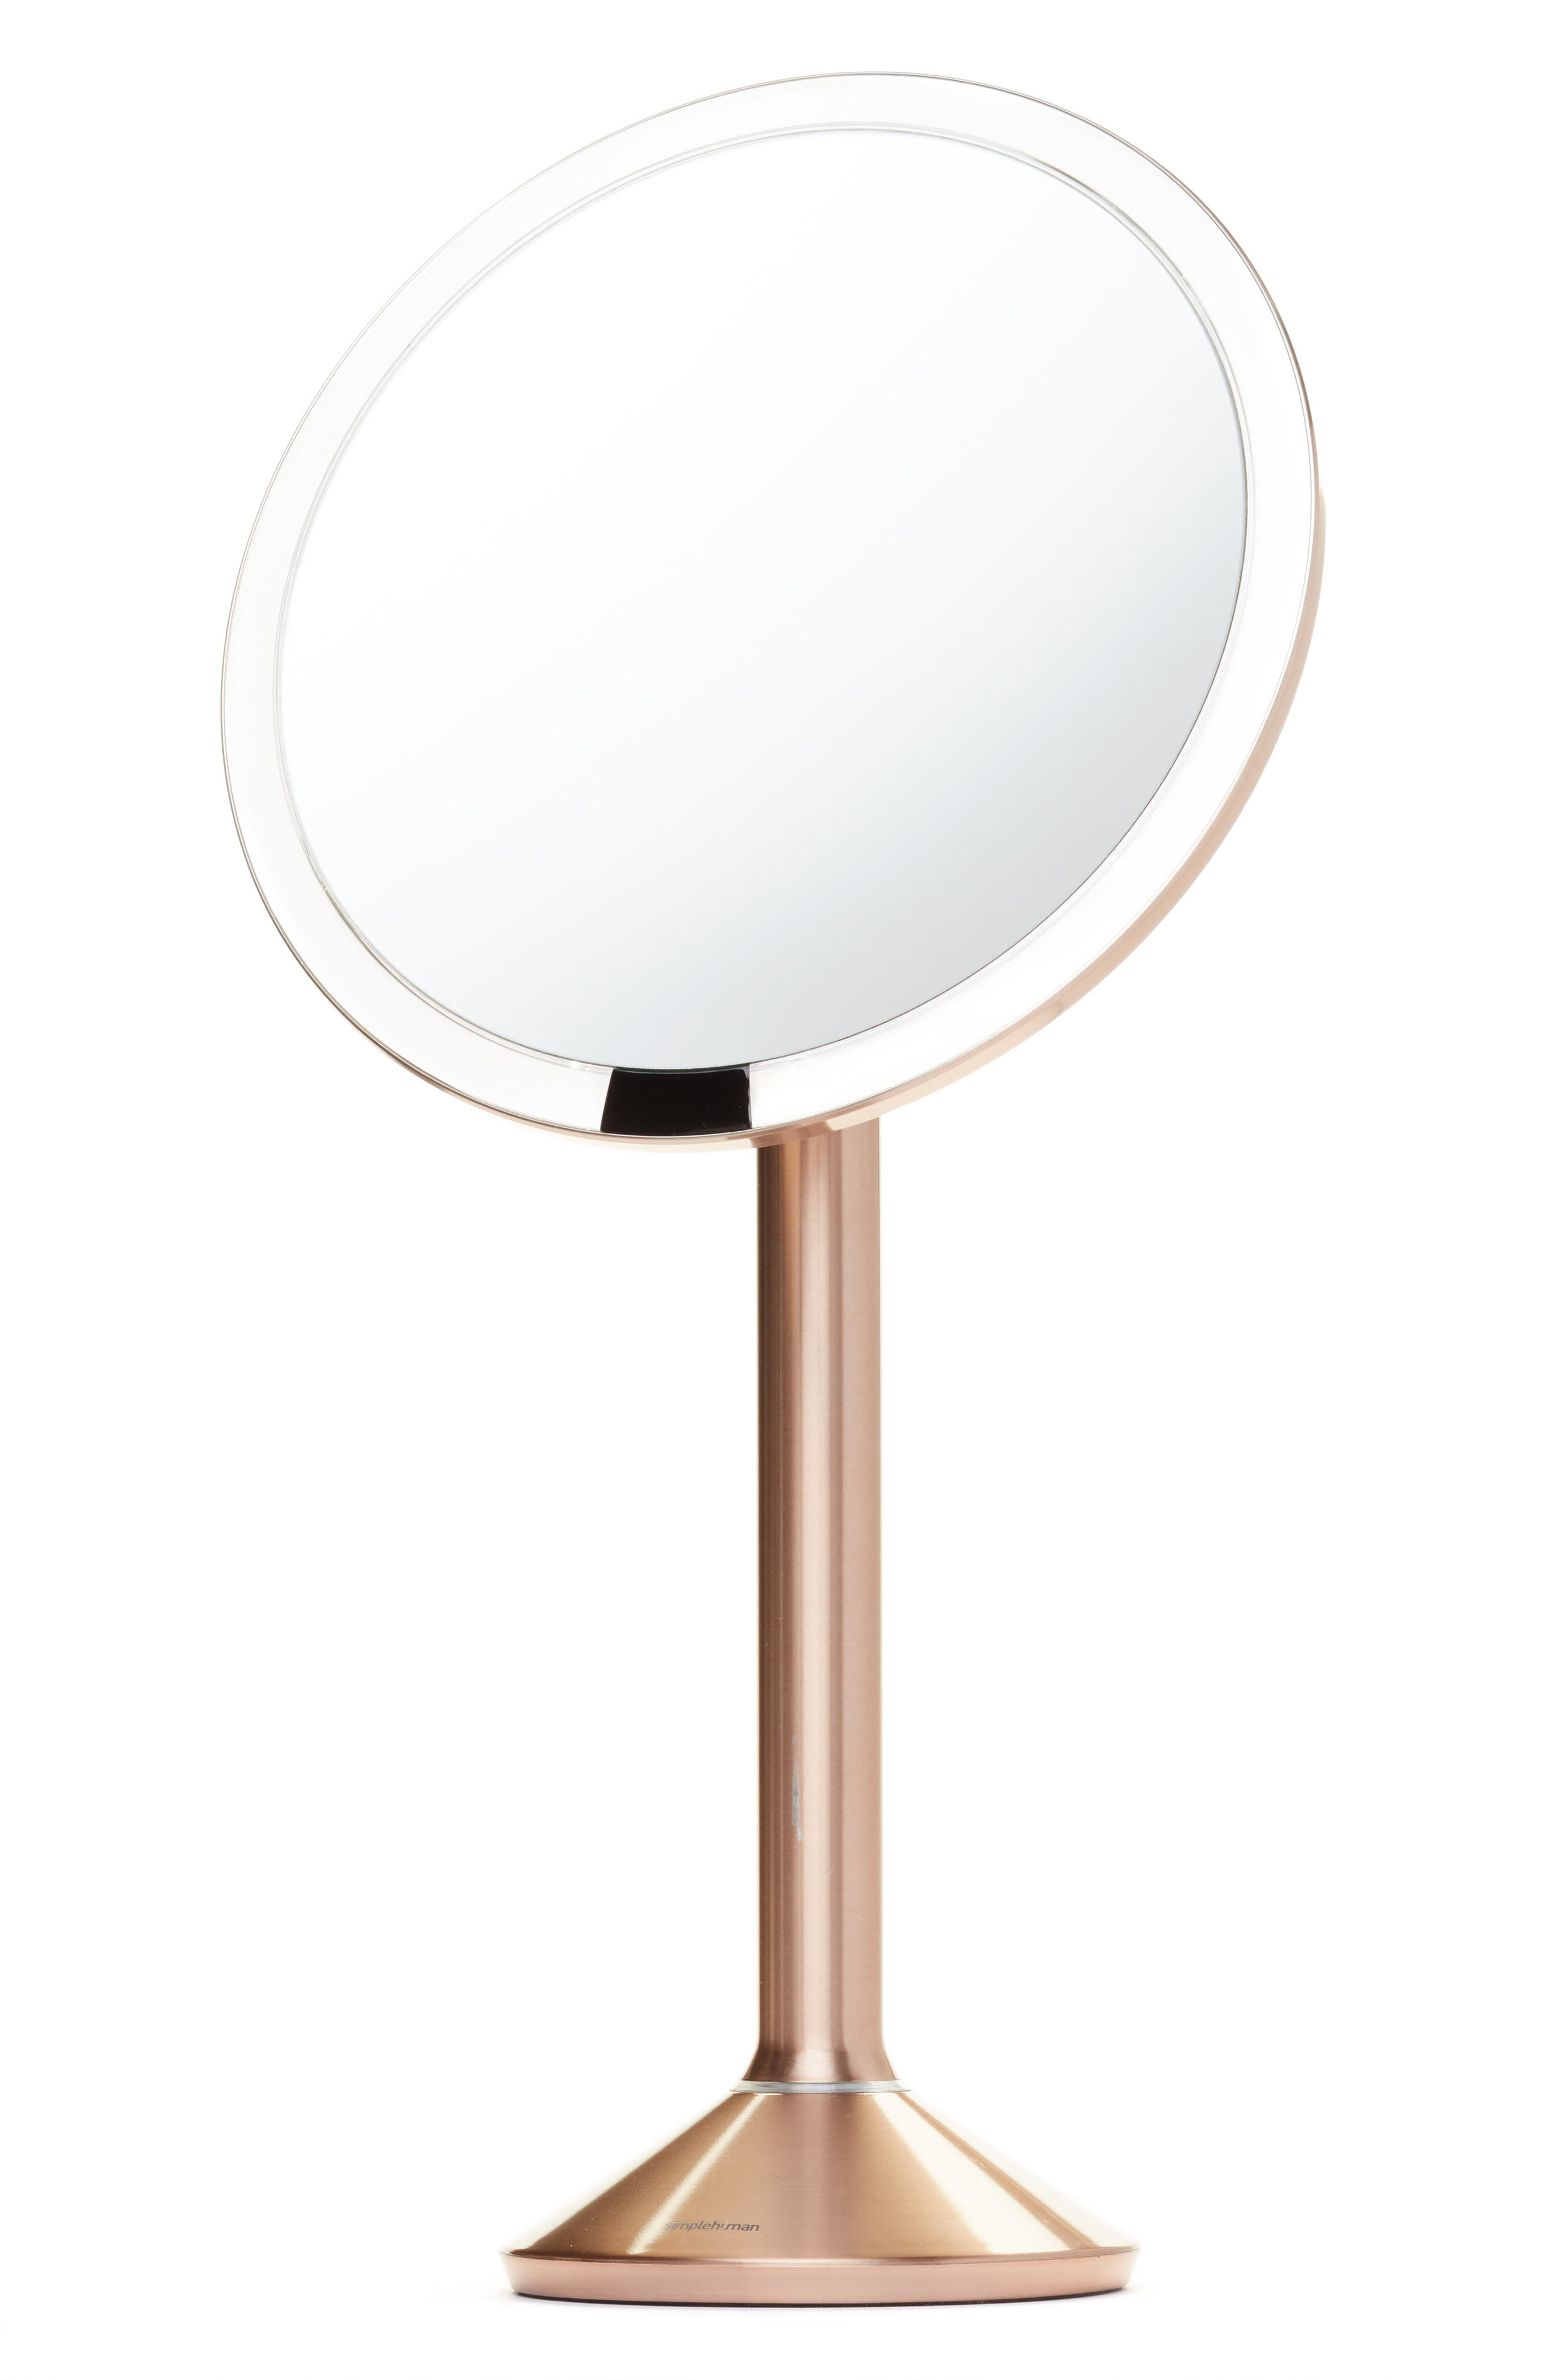 Wide View 1x Magnification Simplehuman Round Sensor Mirror Pro 8 Inch Nordstrom